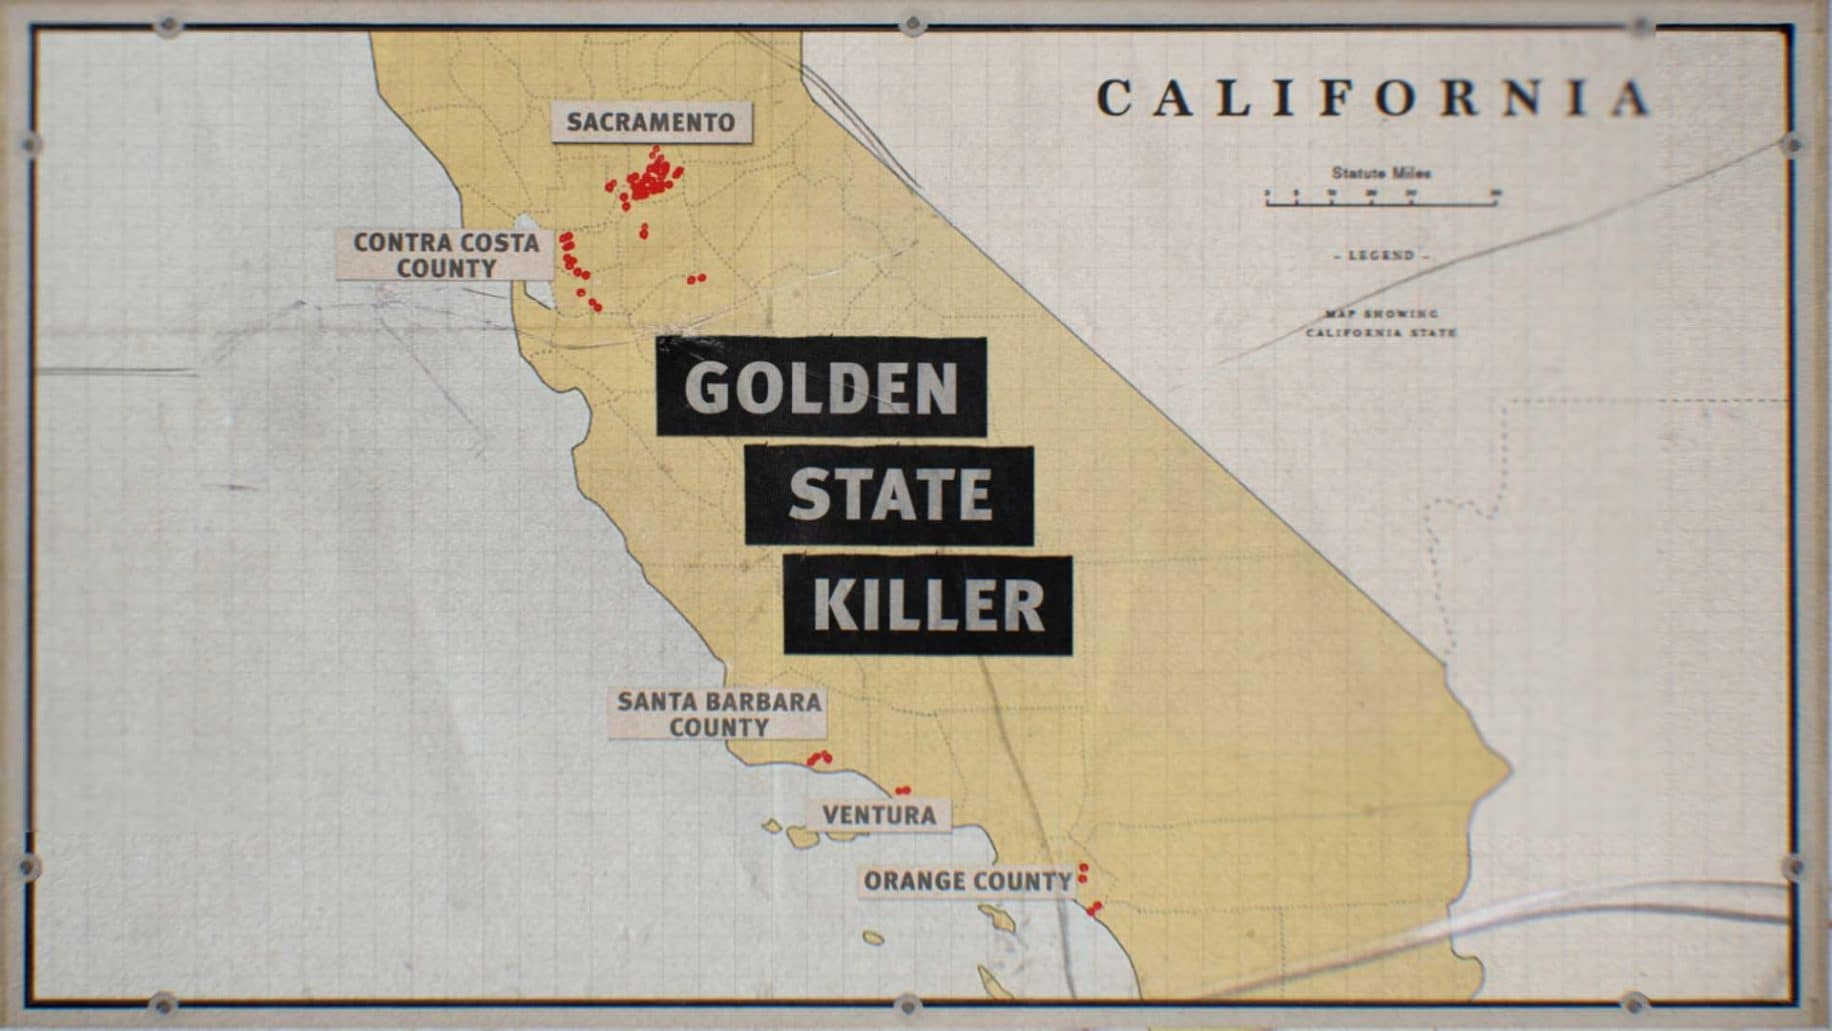 A map showing the area covered by the Golden State Killer